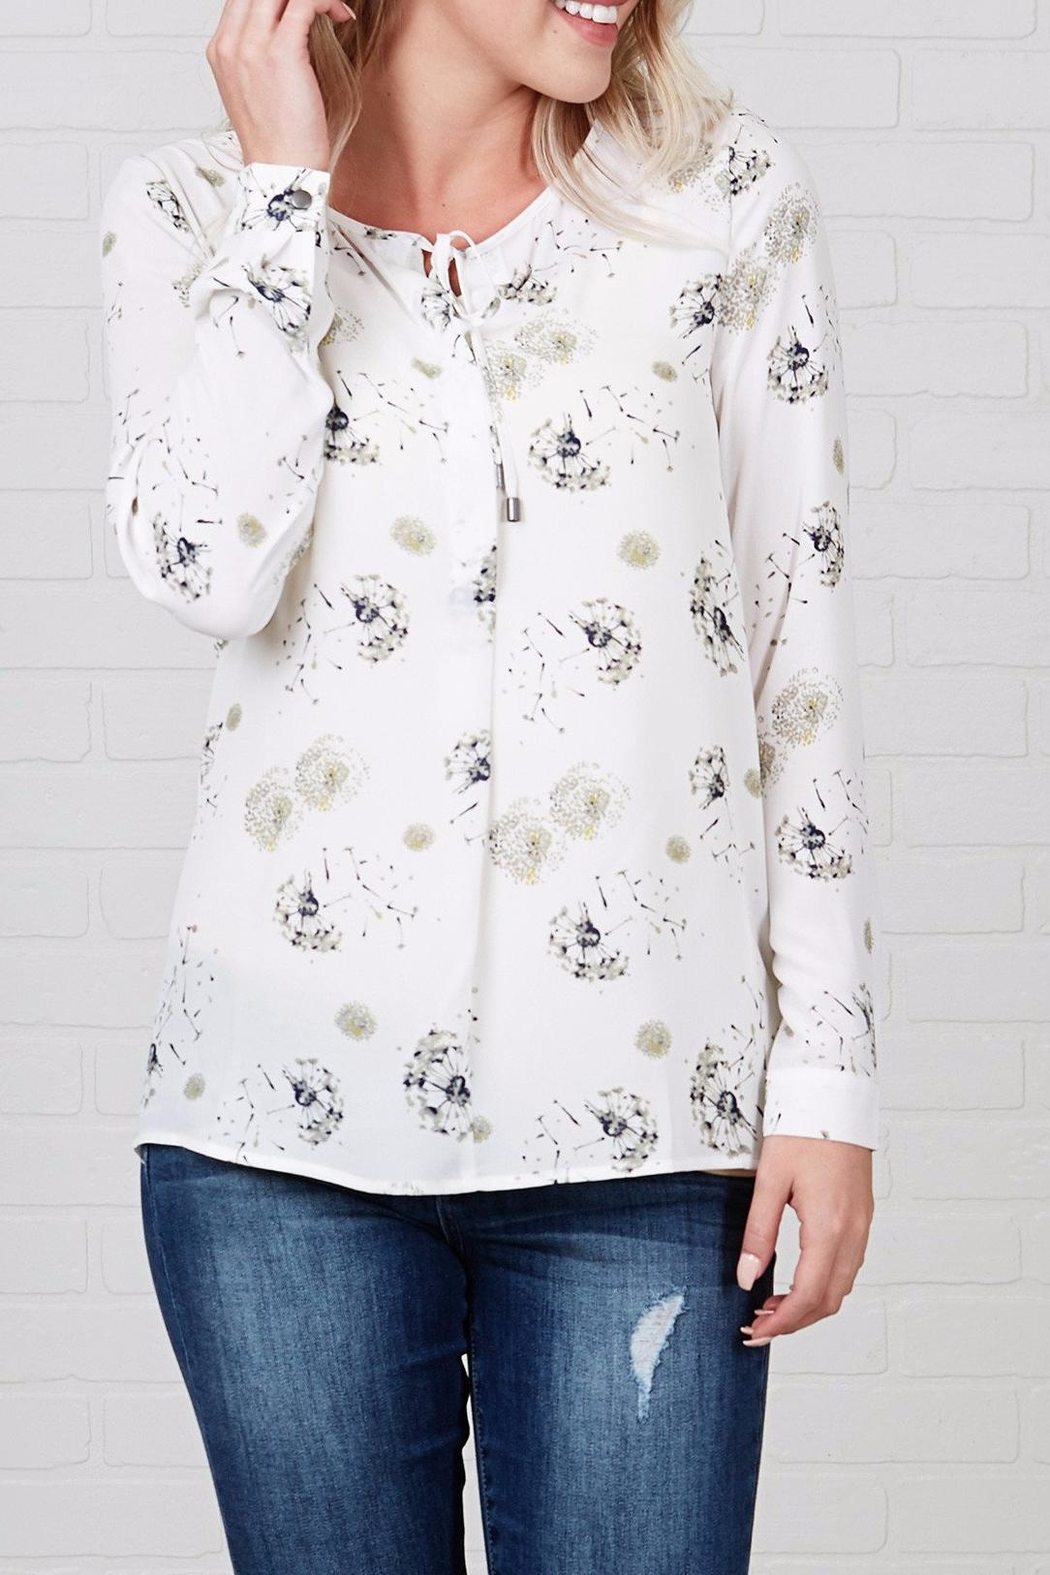 Downeast Basics Garden Love Blouse - Front Cropped Image